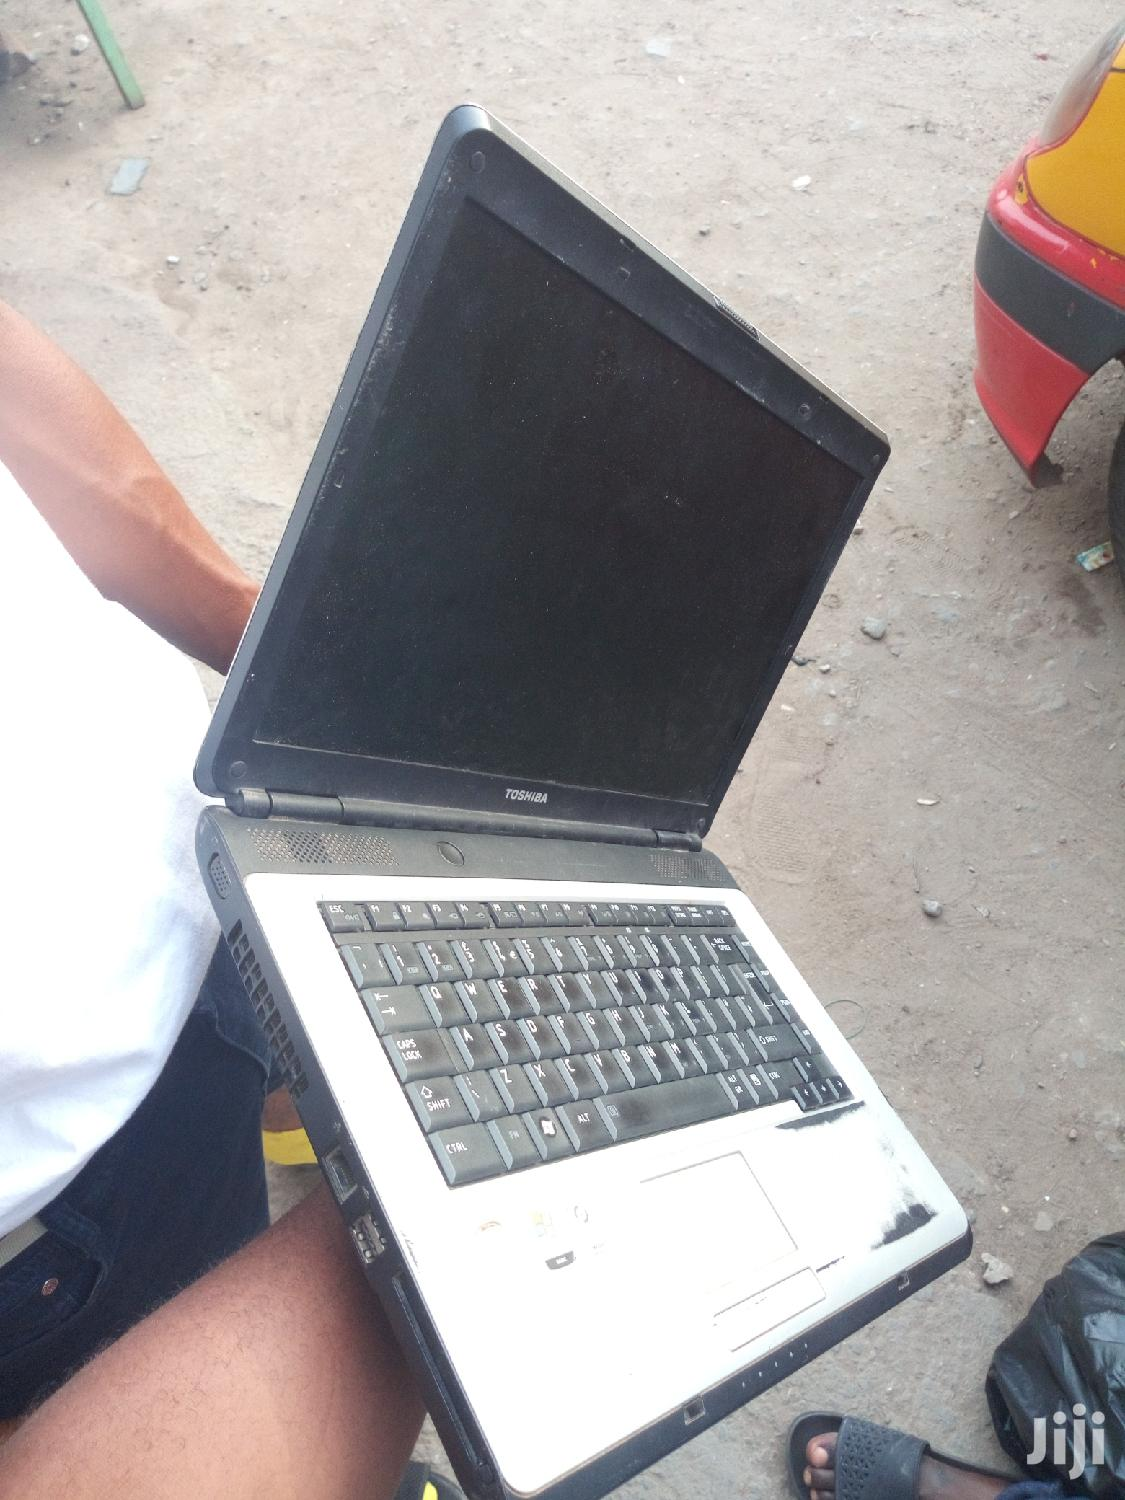 Laptop Toshiba dynaEdge DC-100 3GB Intel Core 2 Quad HDD 160GB | Laptops & Computers for sale in Kokomlemle, Greater Accra, Ghana